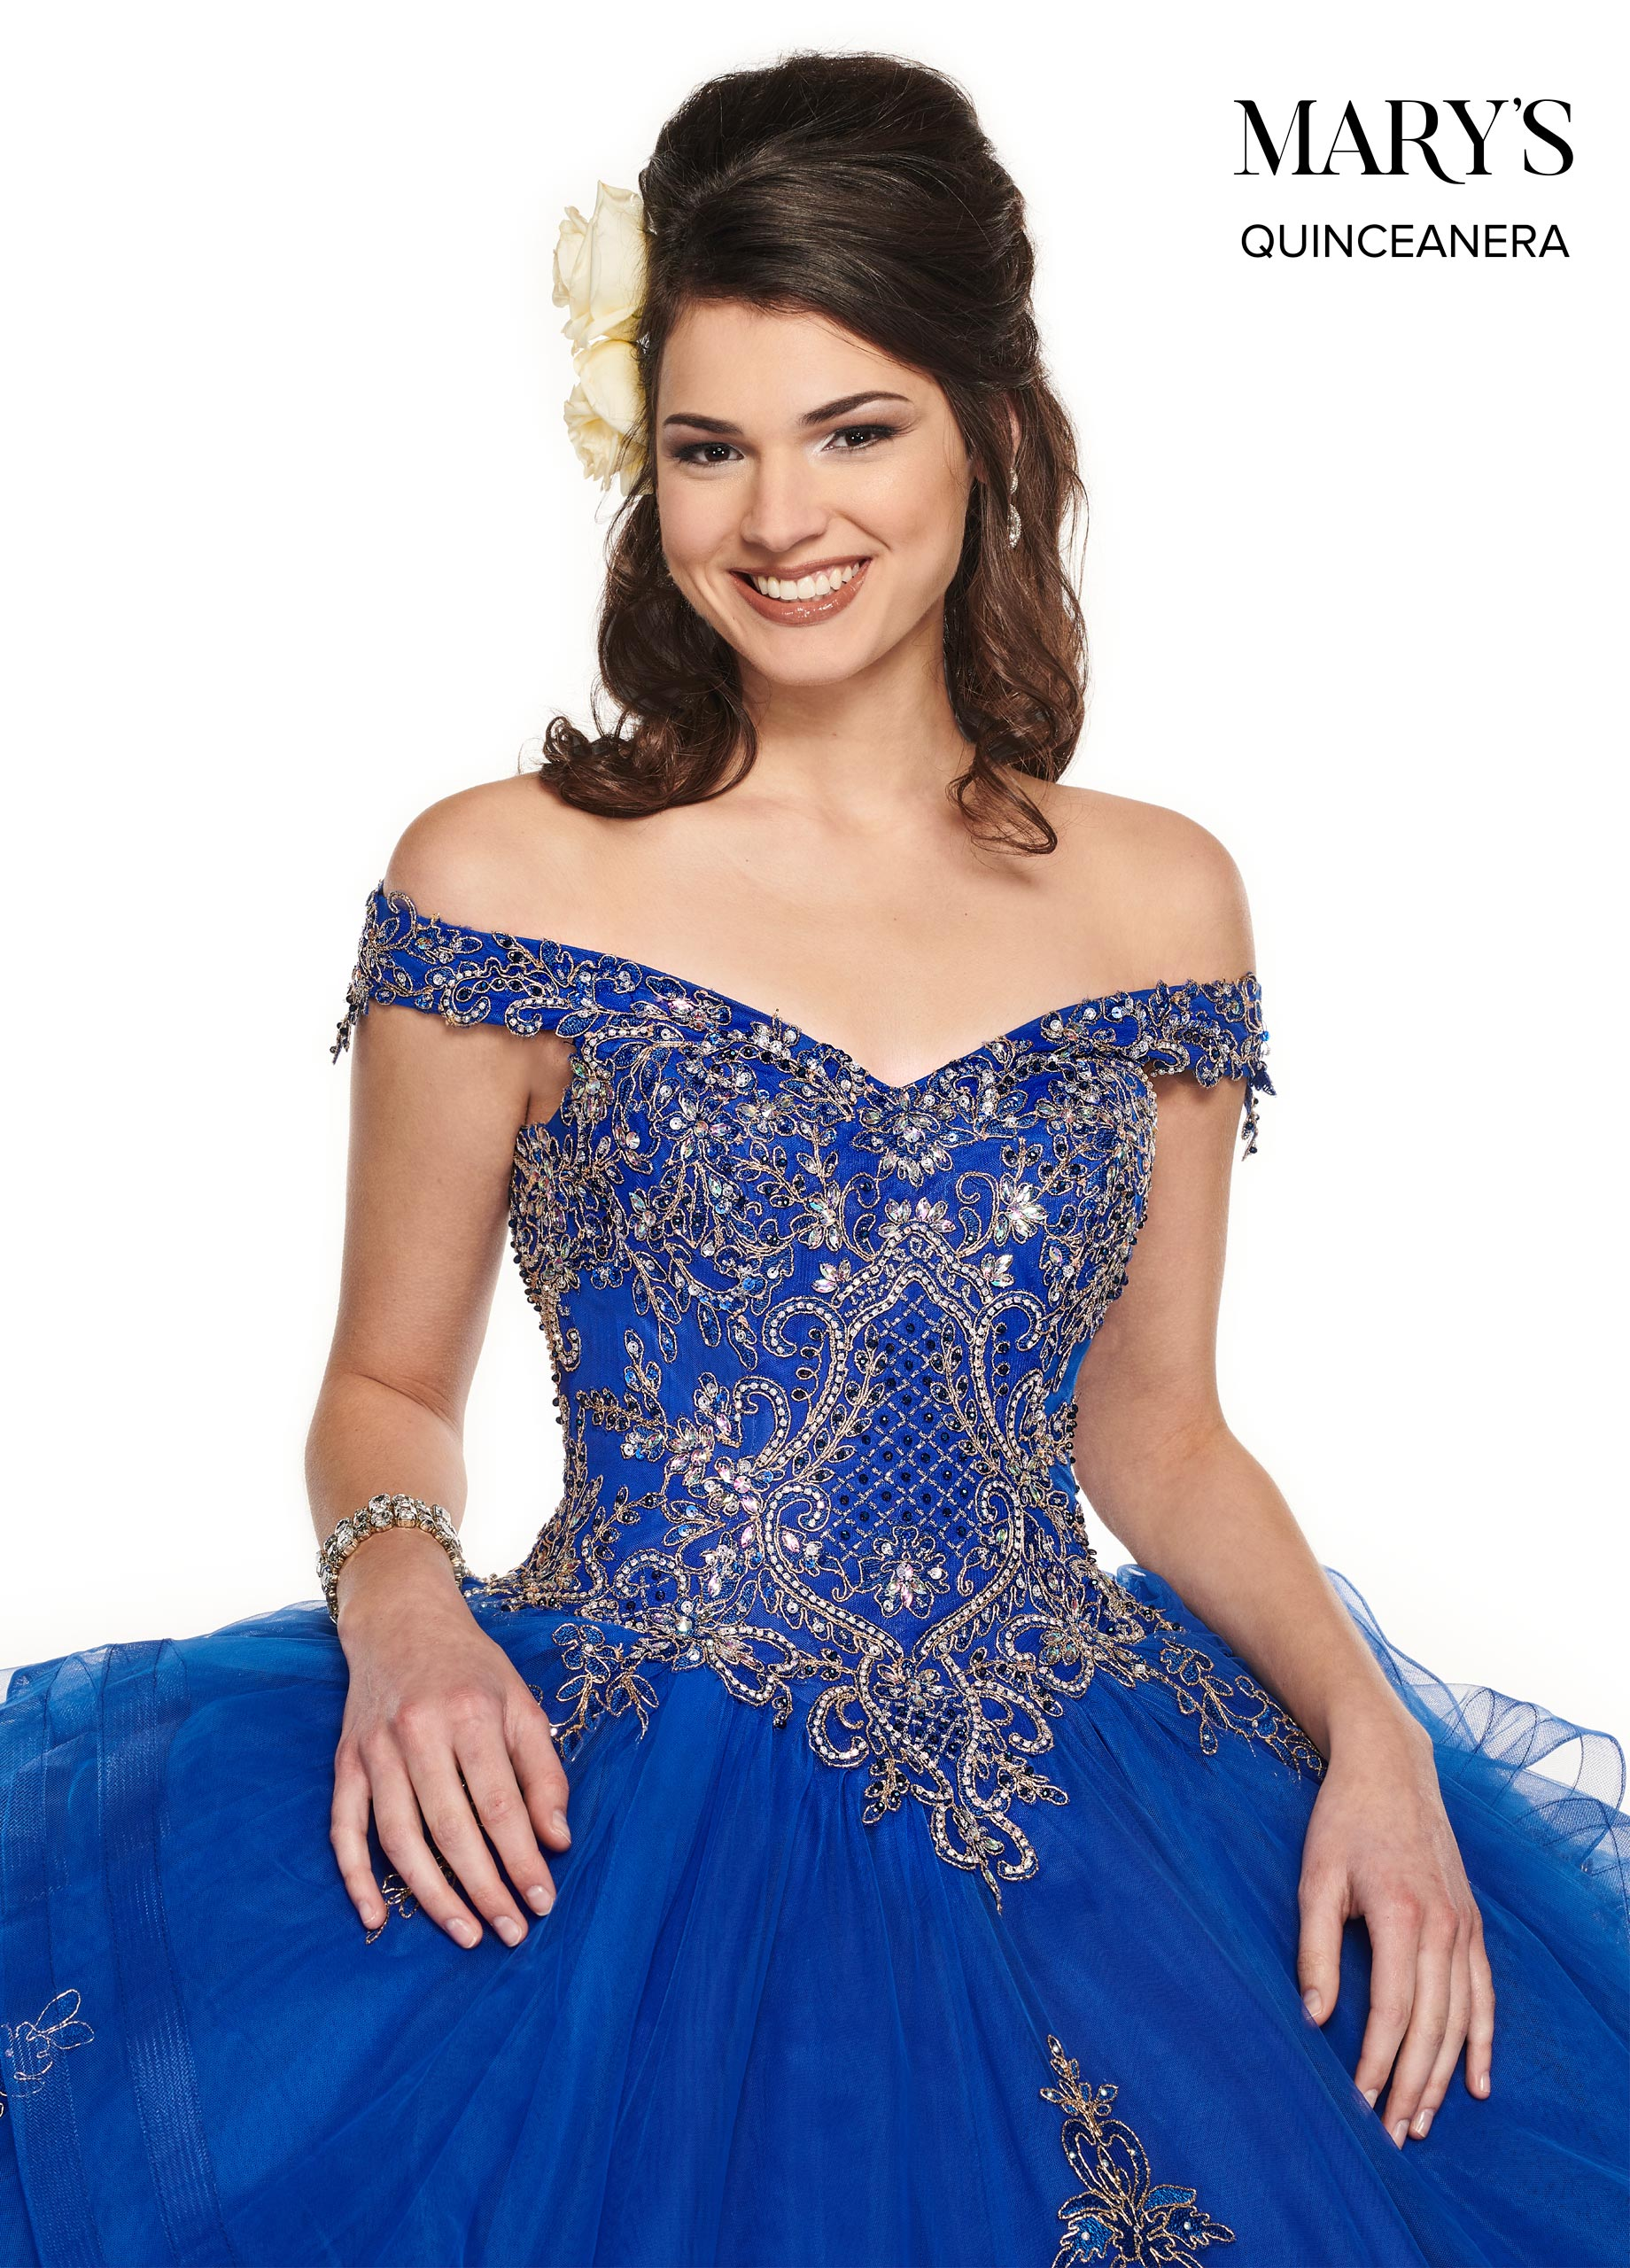 Marys Quinceanera Dresses | Mary's Quinceanera | Style - MQ2083